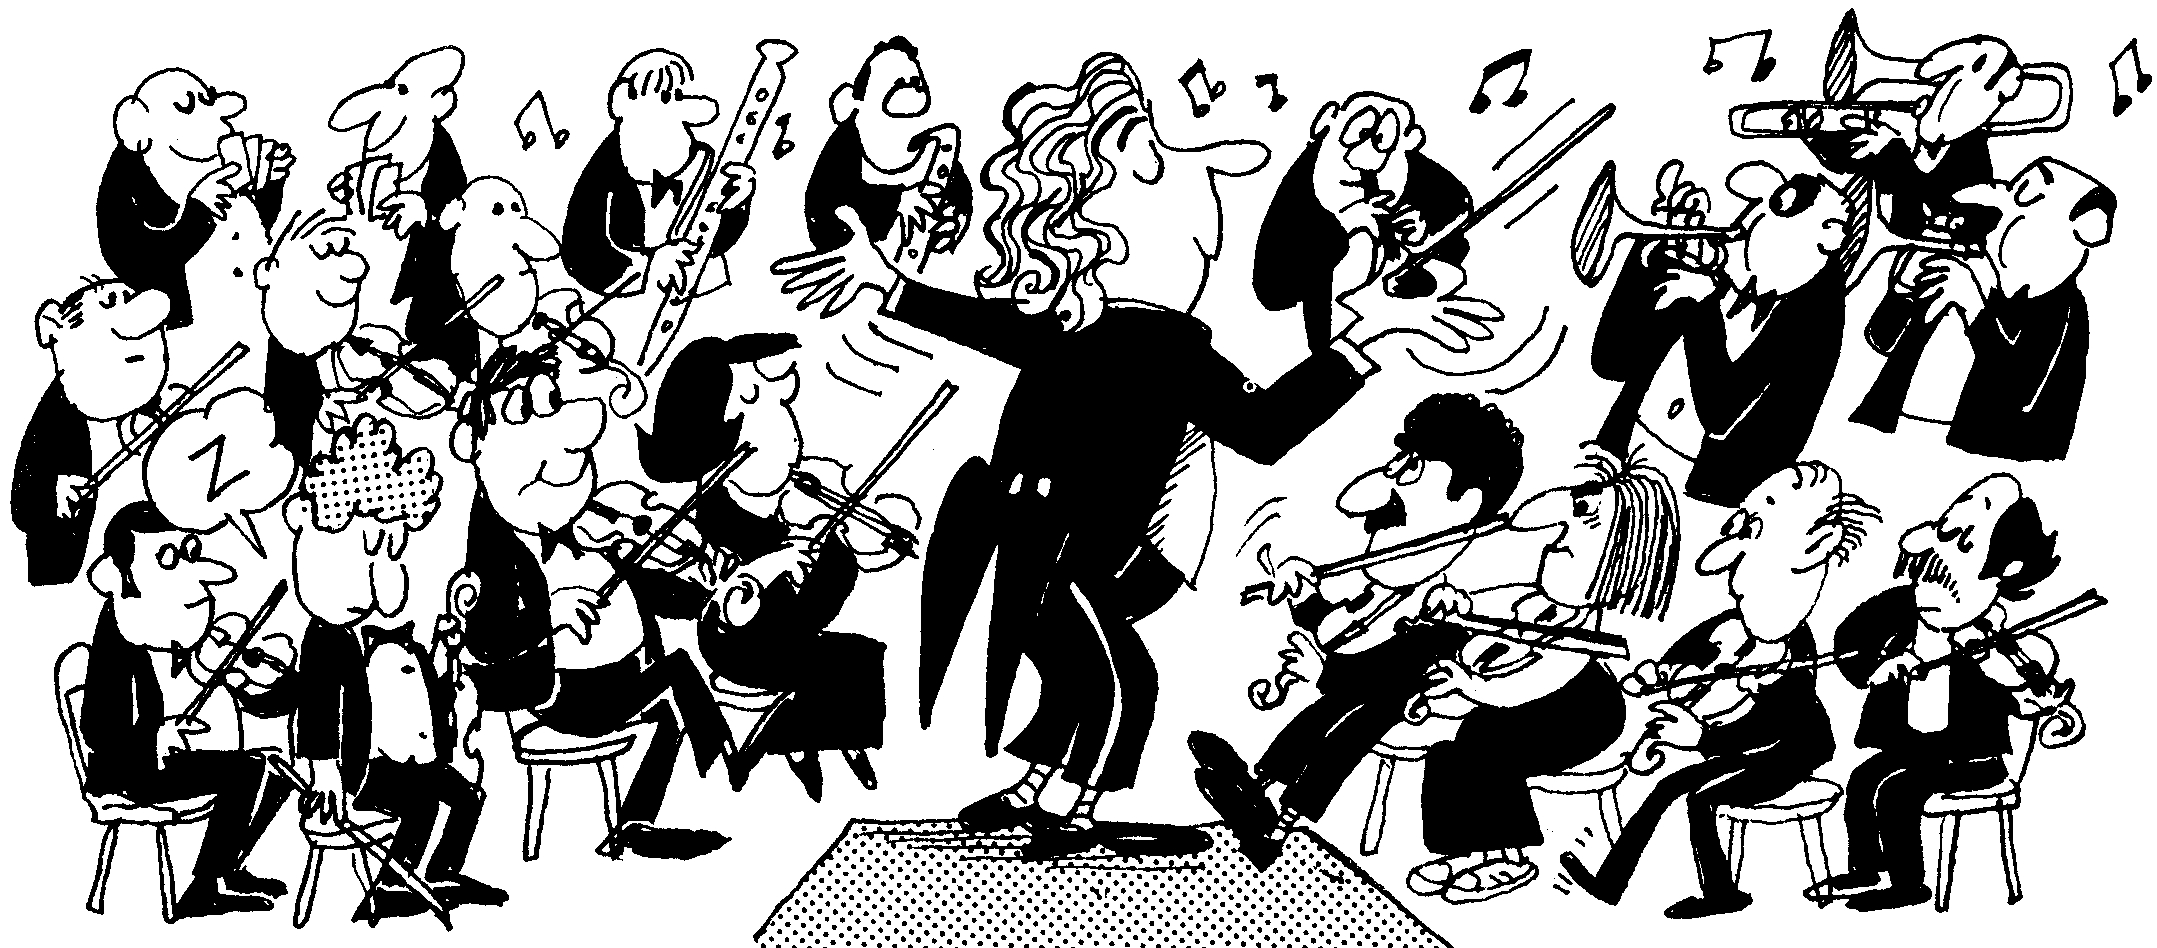 Orchestra clipart Best of Orchestra Clipart Free Download.